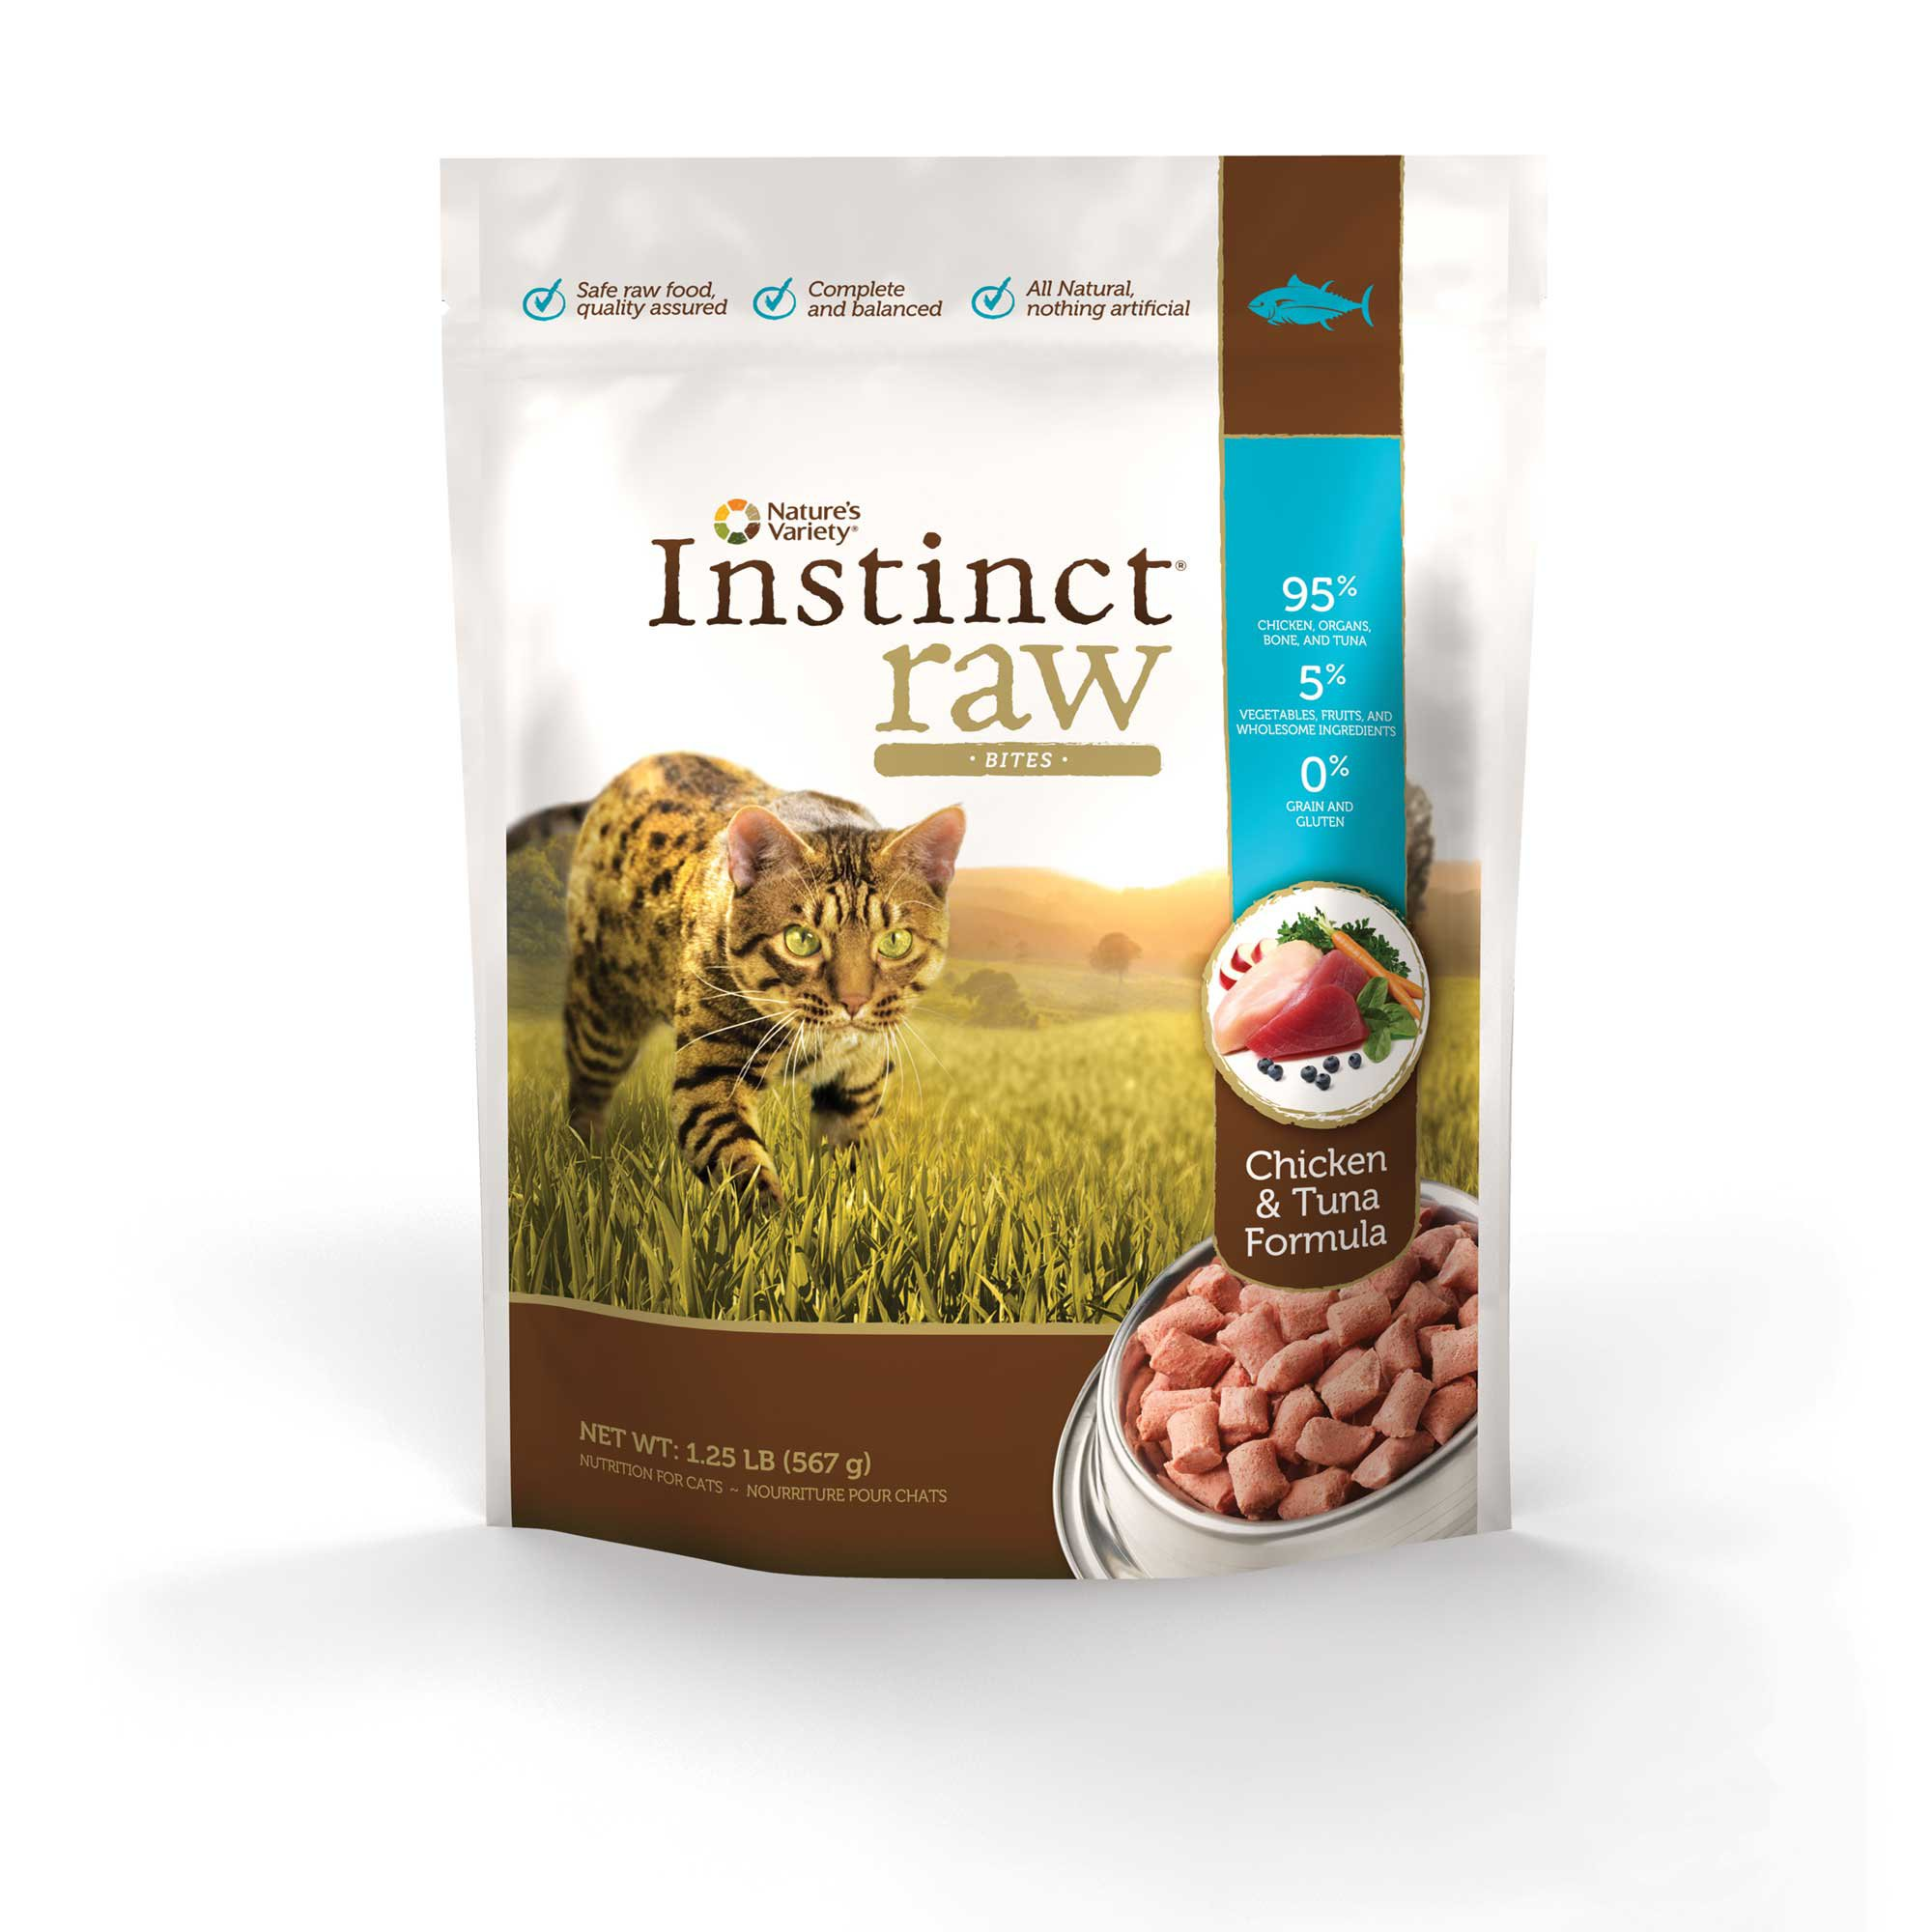 Nature's Variety Instinct Raw Chicken & Tuna Bites Frozen Cat Food